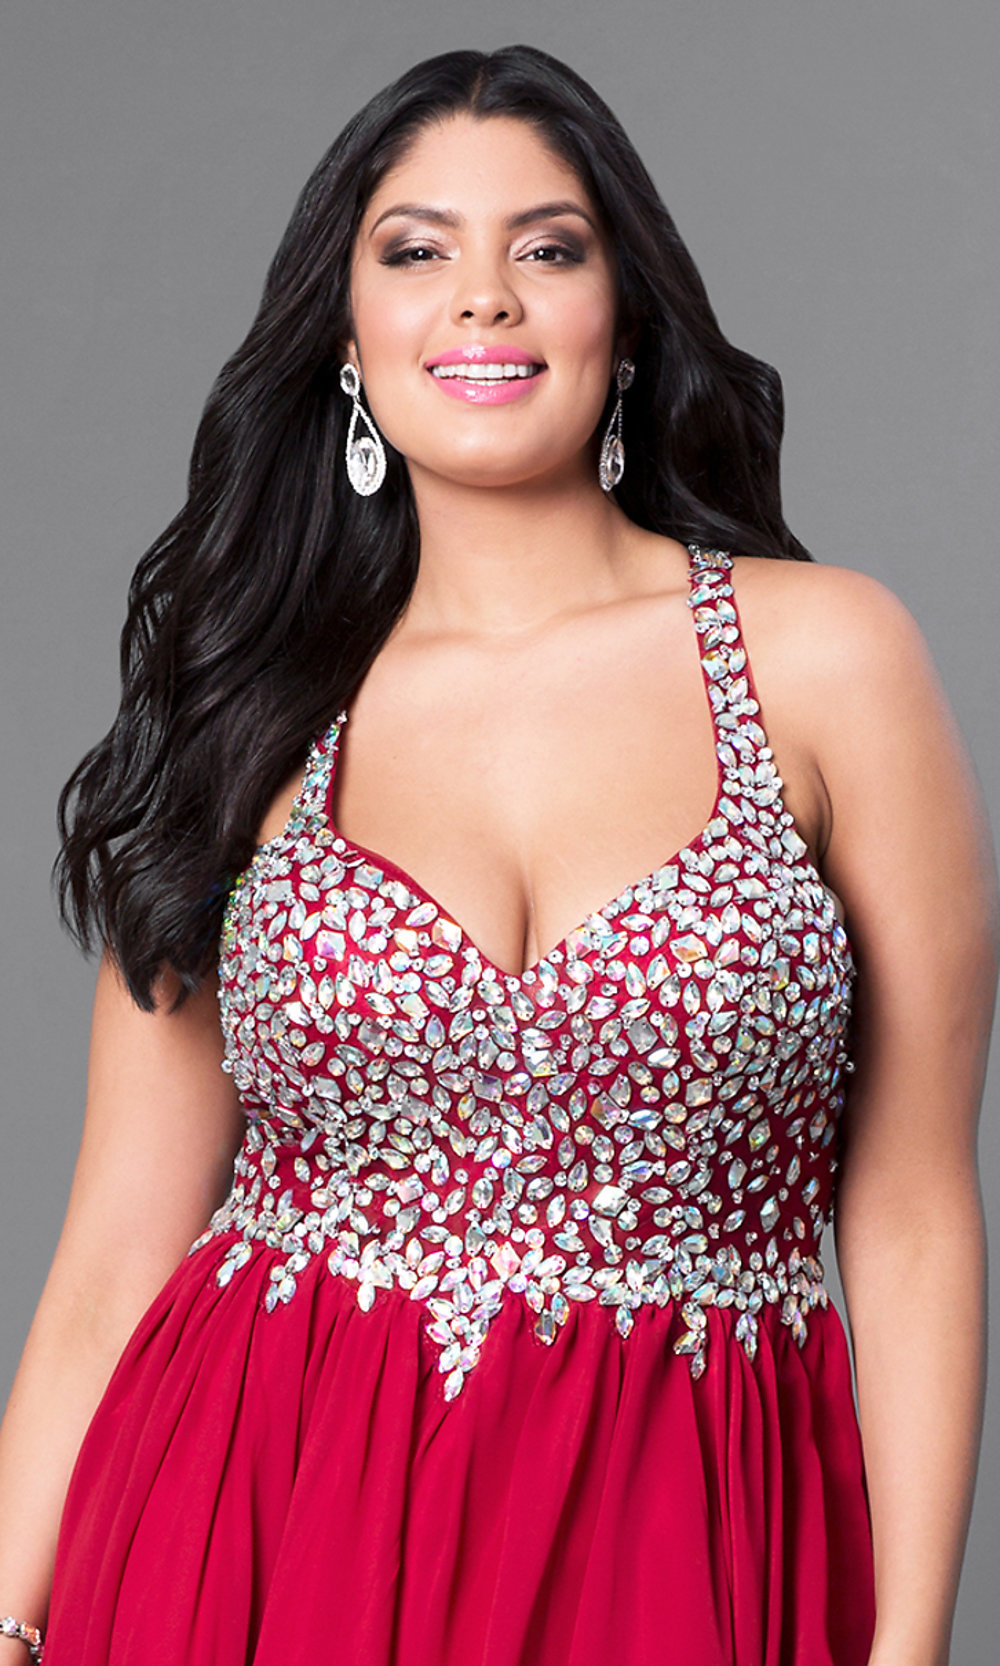 Burgundy Red Short Plus-Size Party Dress with Jewels